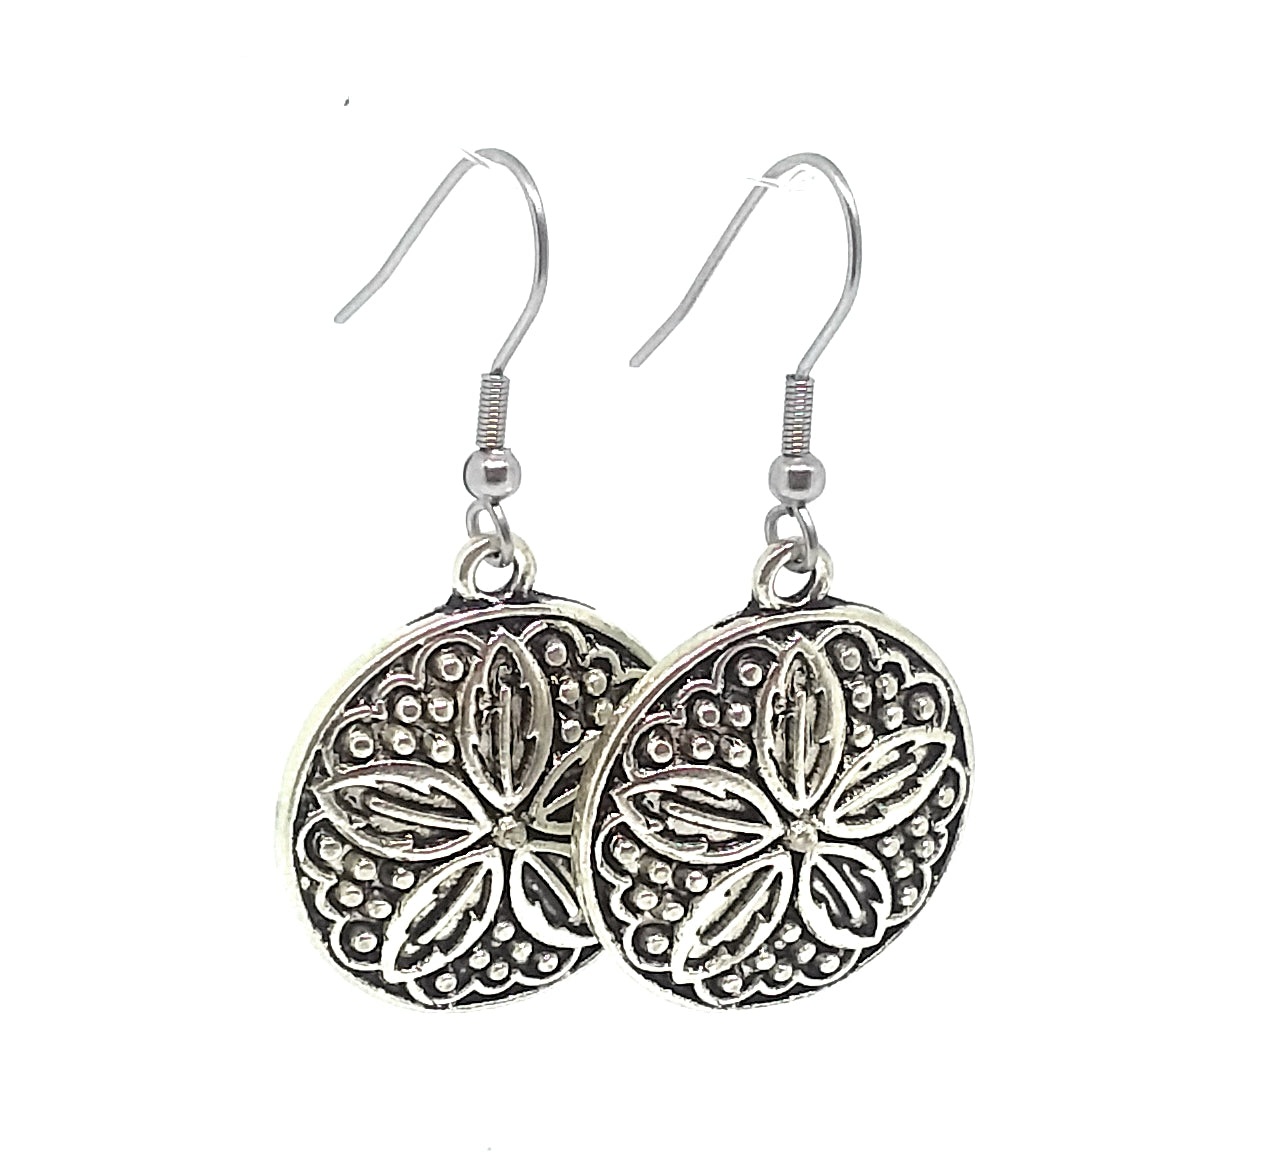 Sand Dollar Charm Dangle Earrings with Stainless Steel Ear Wires